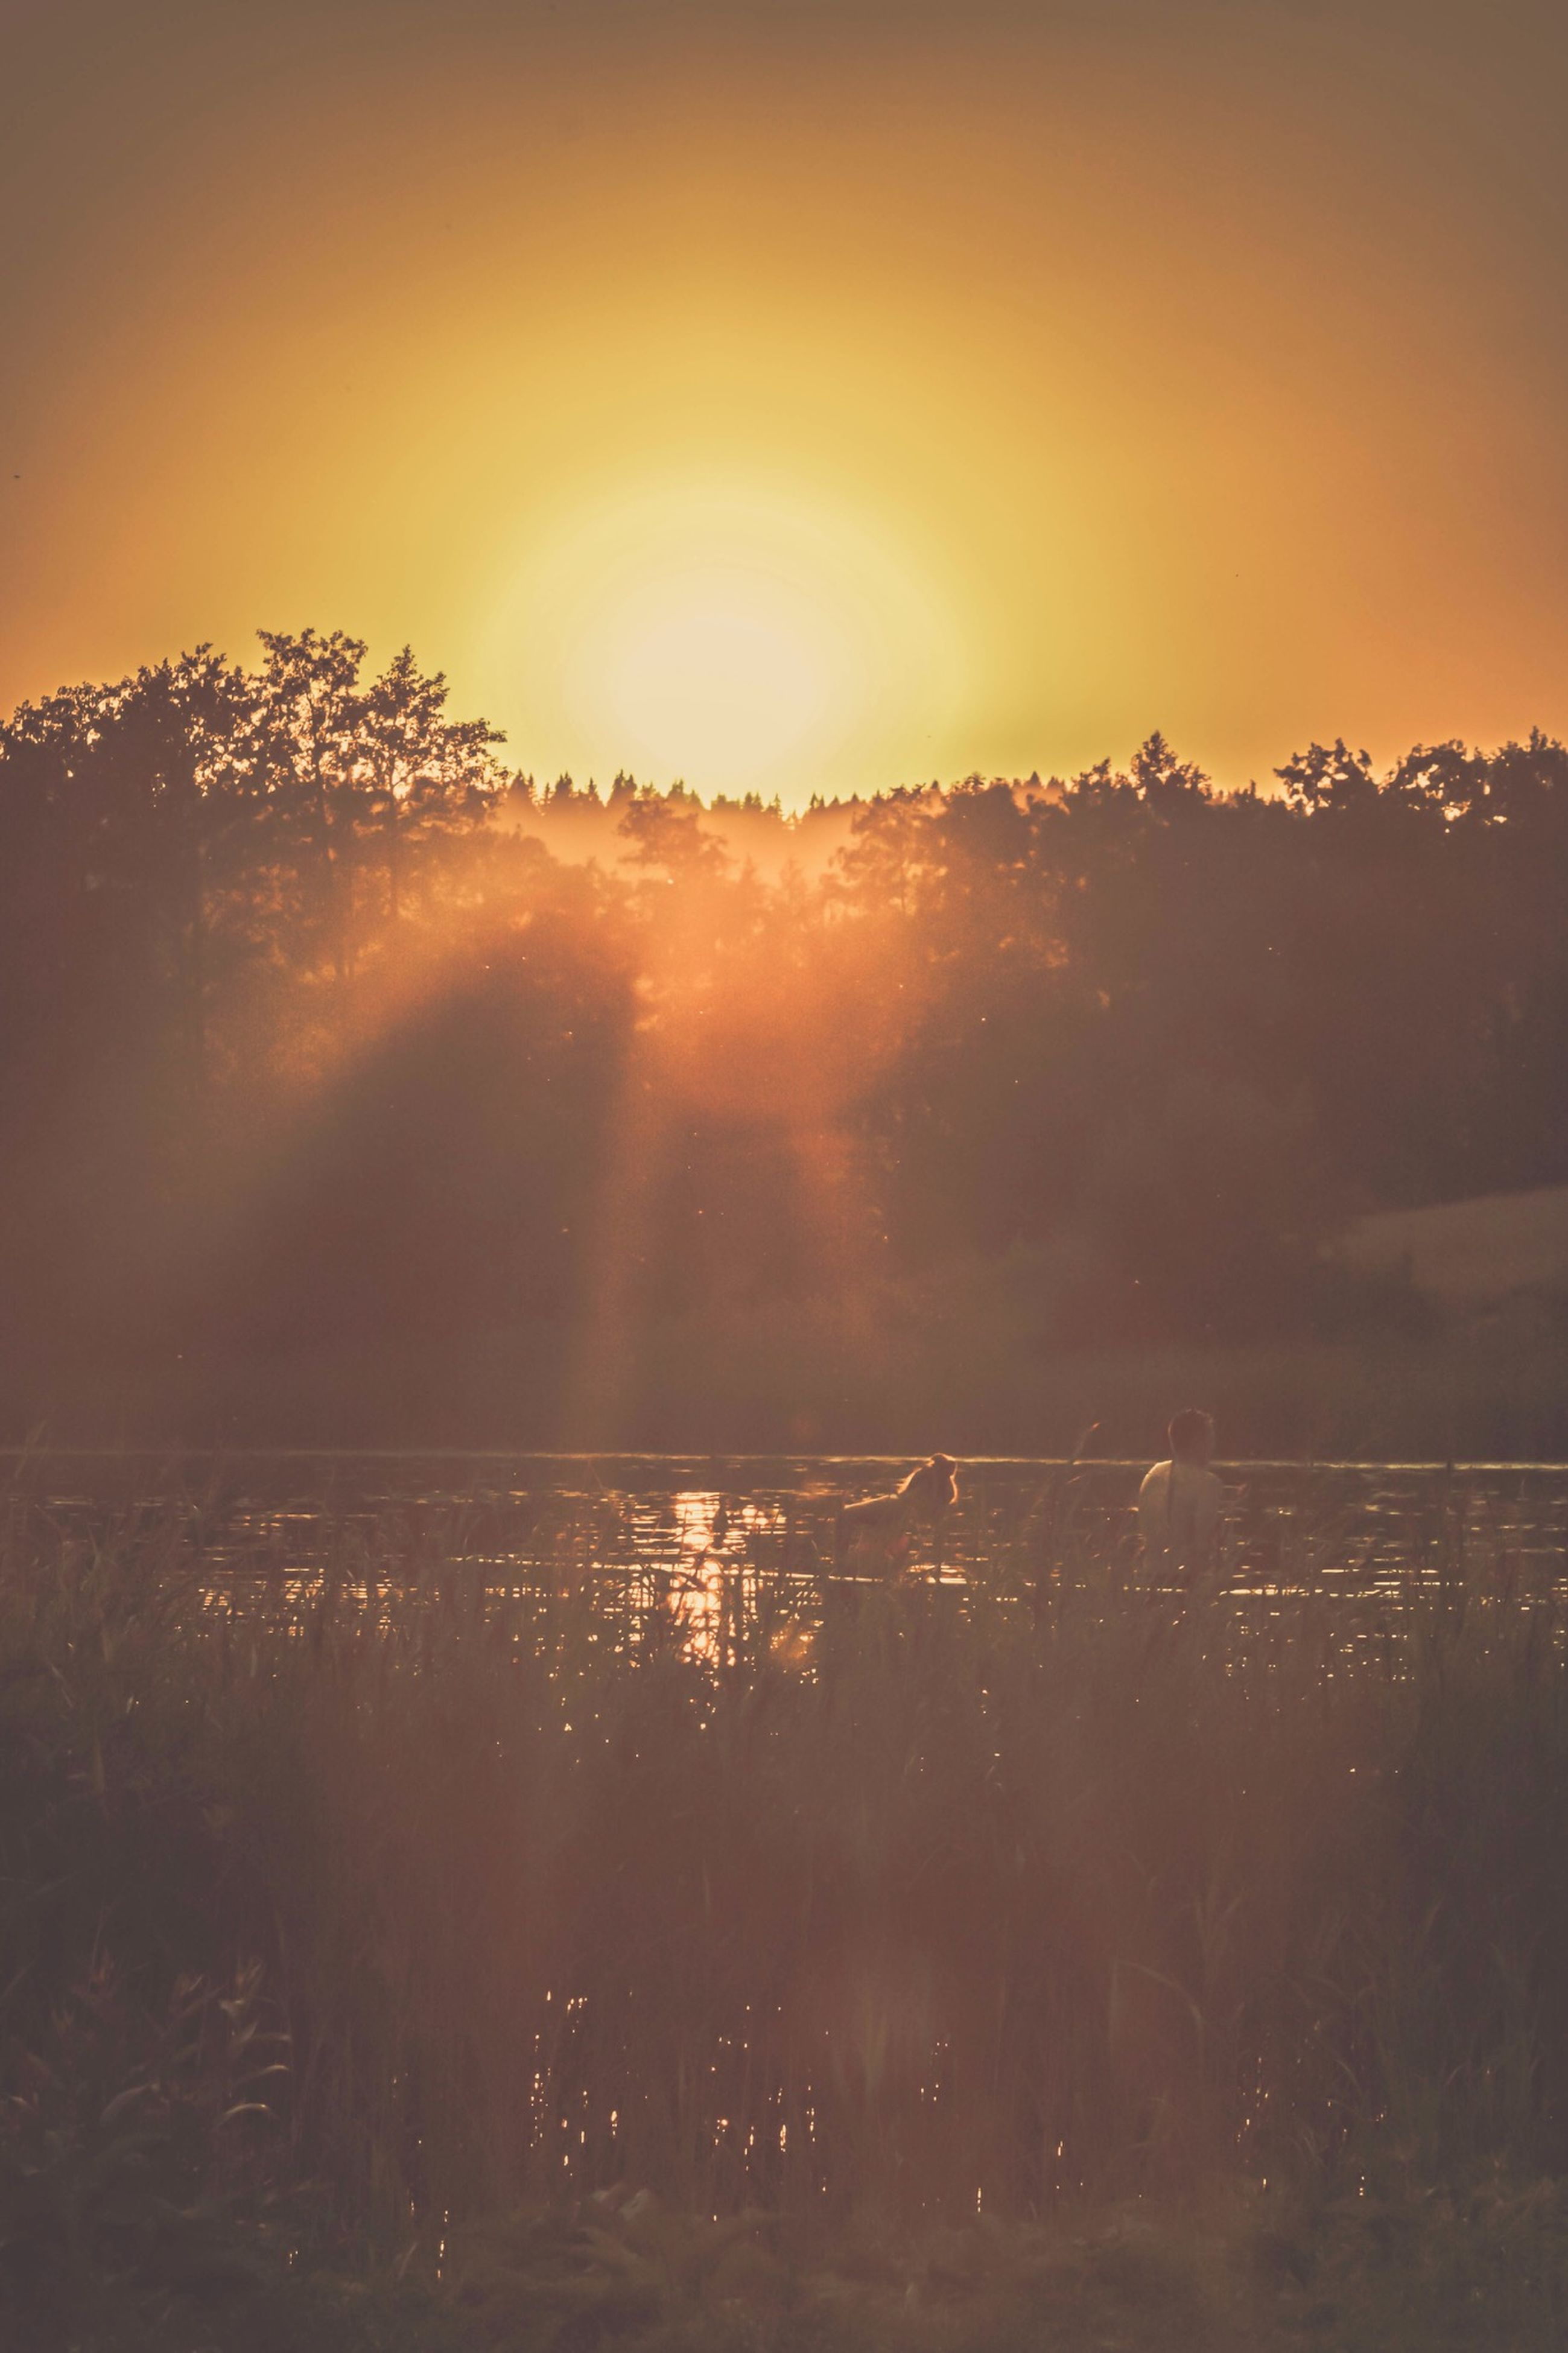 sunset, scenics, tranquil scene, tranquility, tree, sun, beauty in nature, landscape, clear sky, nature, sky, water, idyllic, sunlight, outdoors, orange color, silhouette, mountain, field, no people